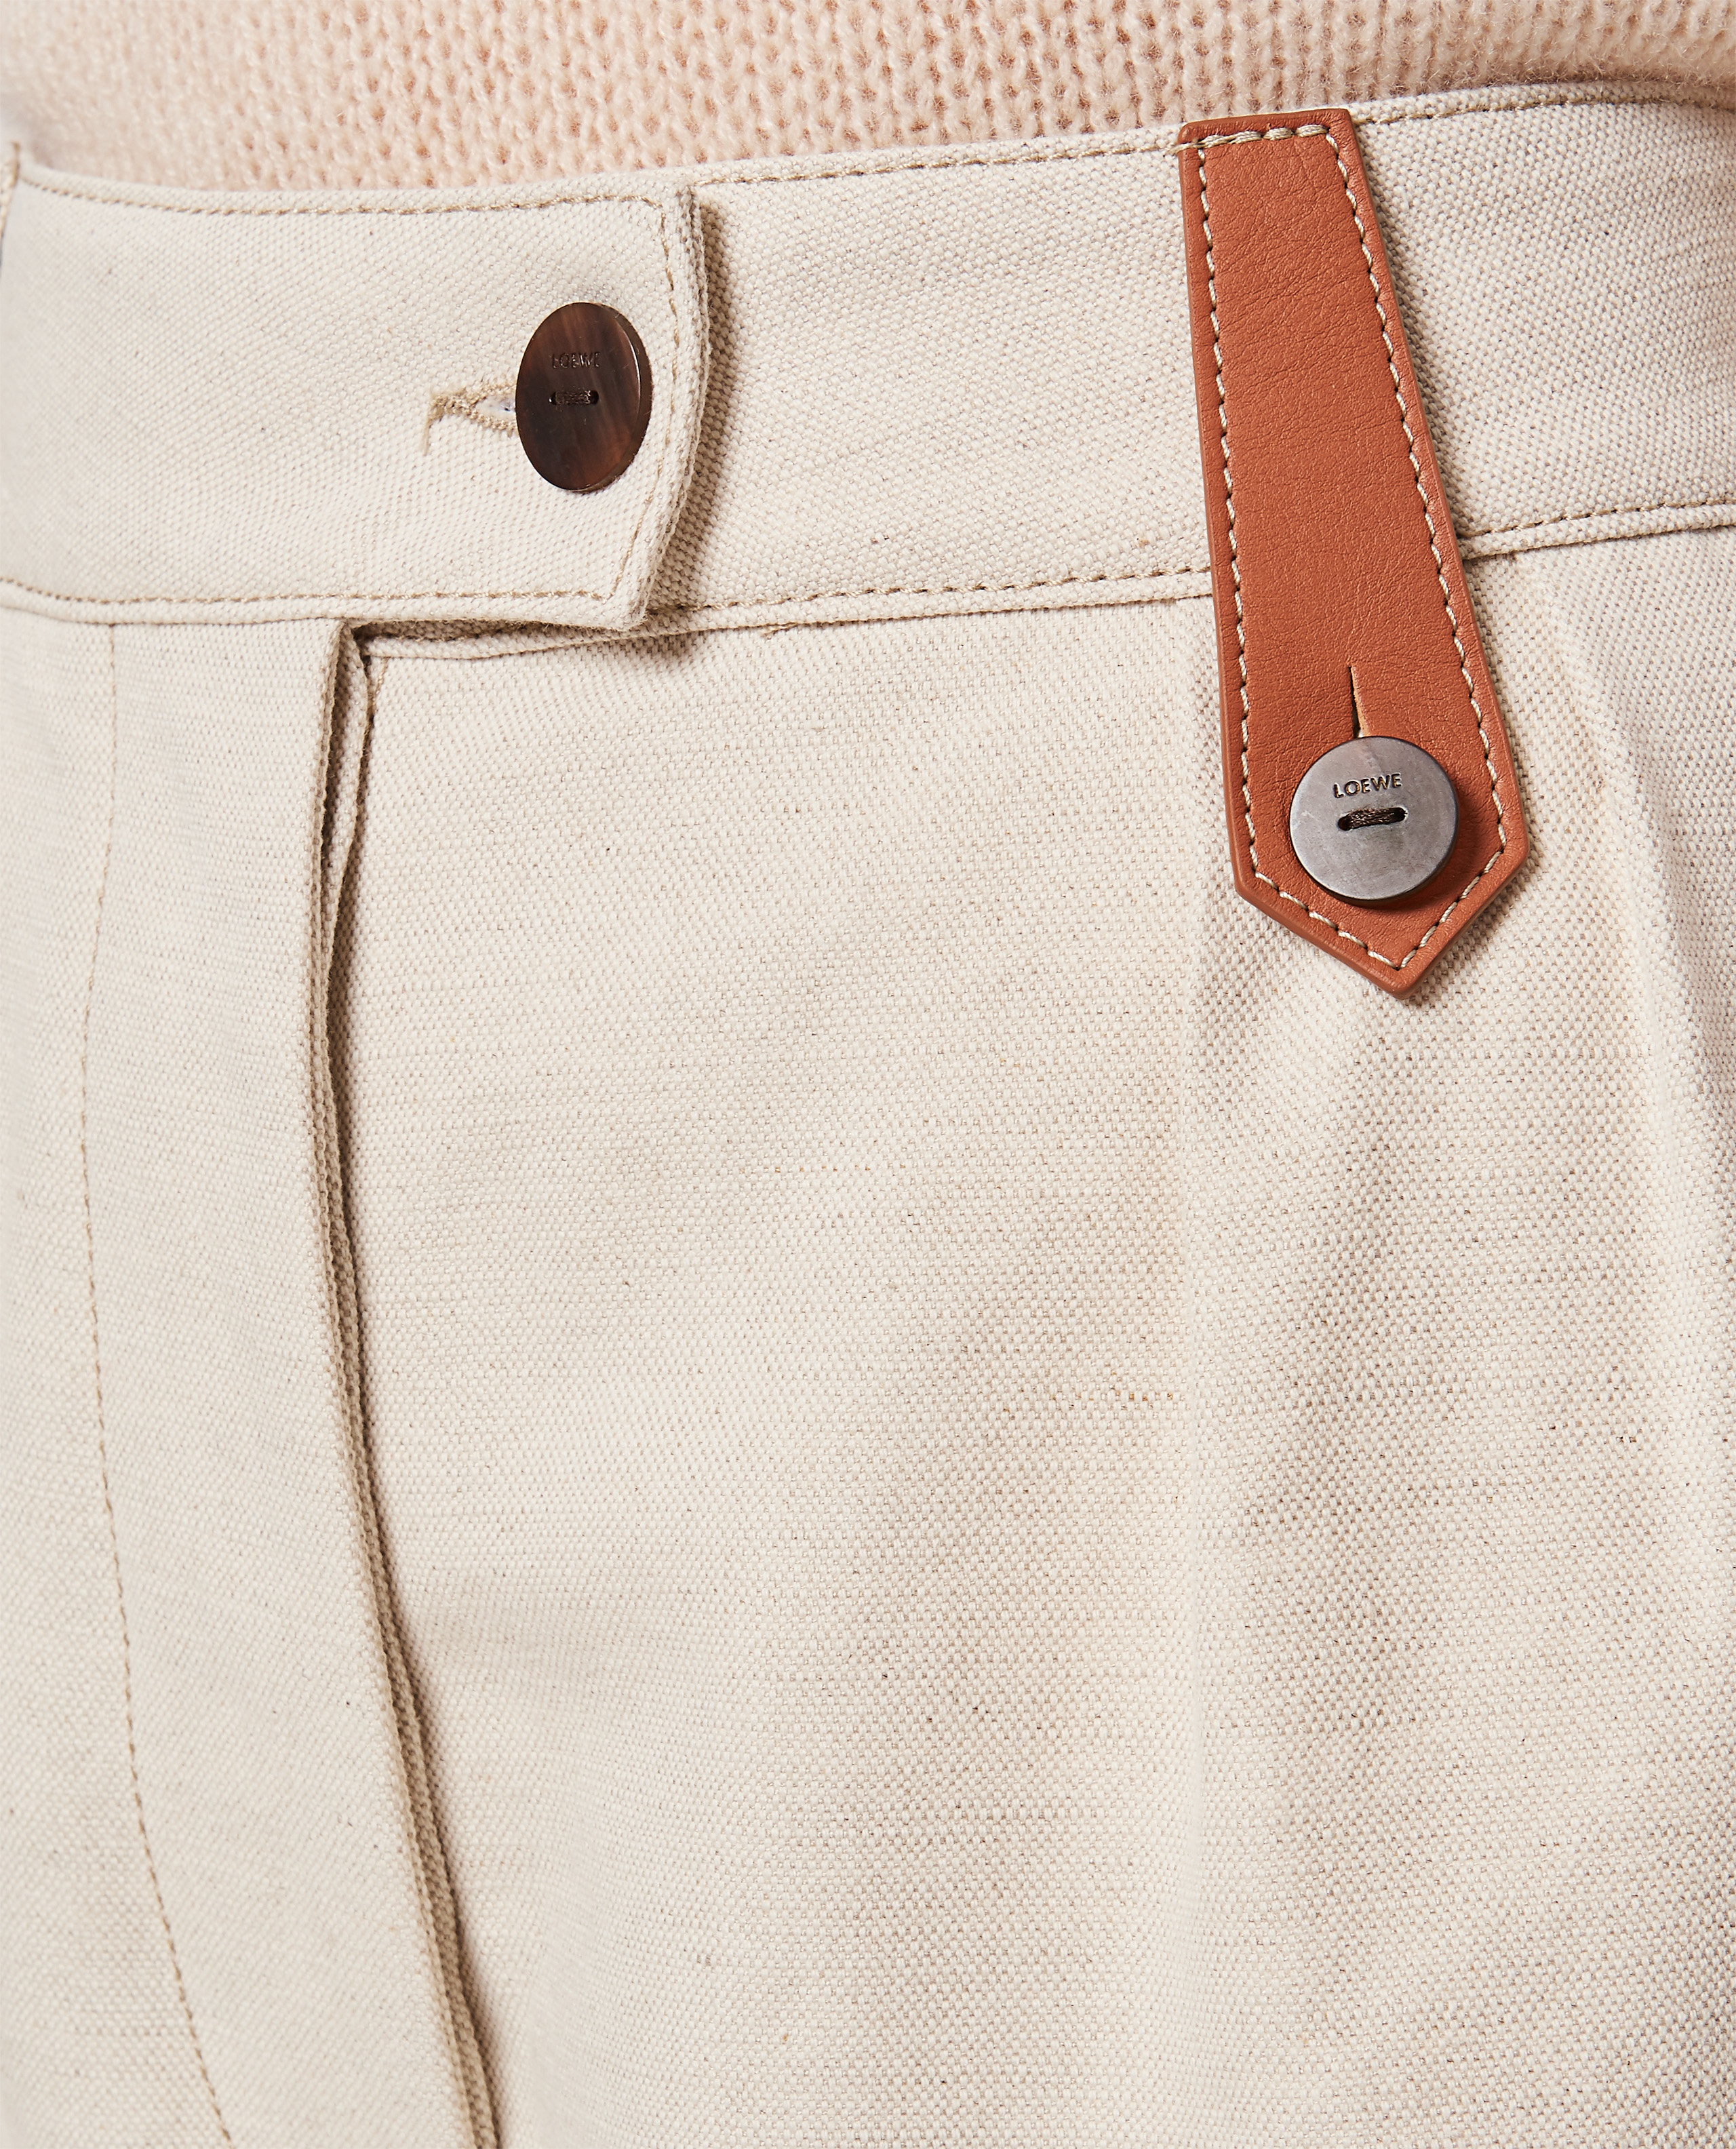 Flared trousers in cotton and linen Women Loewe 000320420046914 4